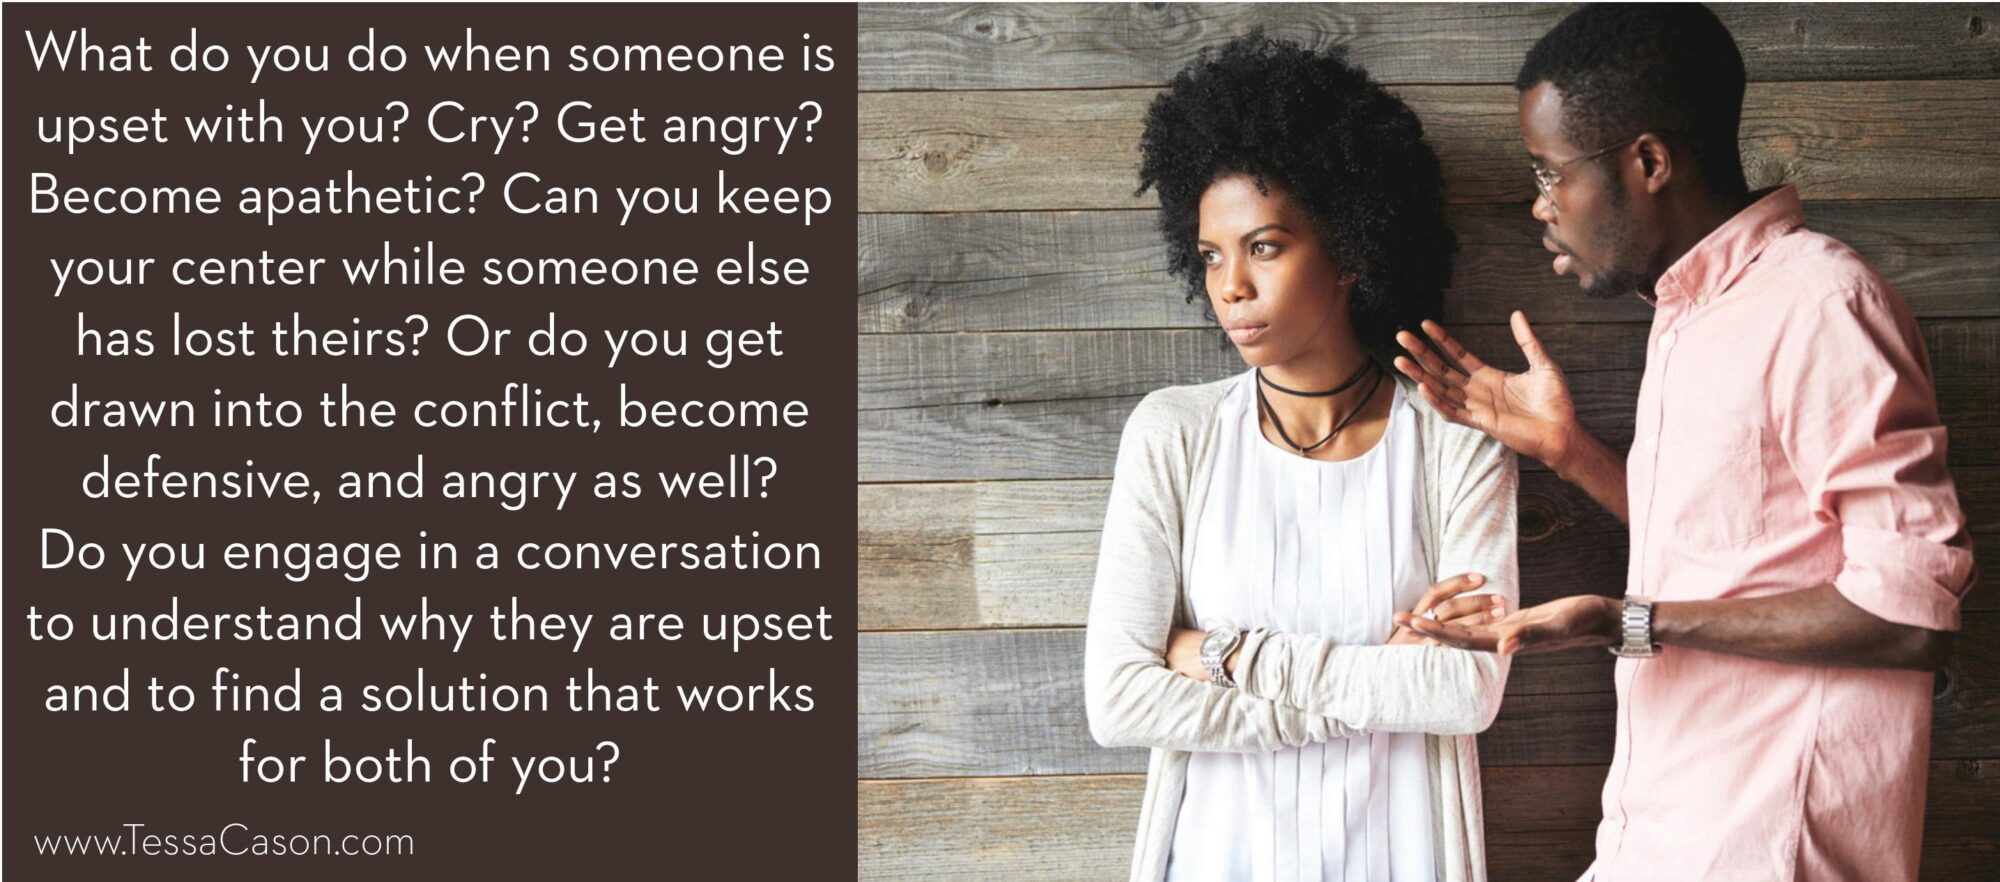 What do you do when someone is upset with you